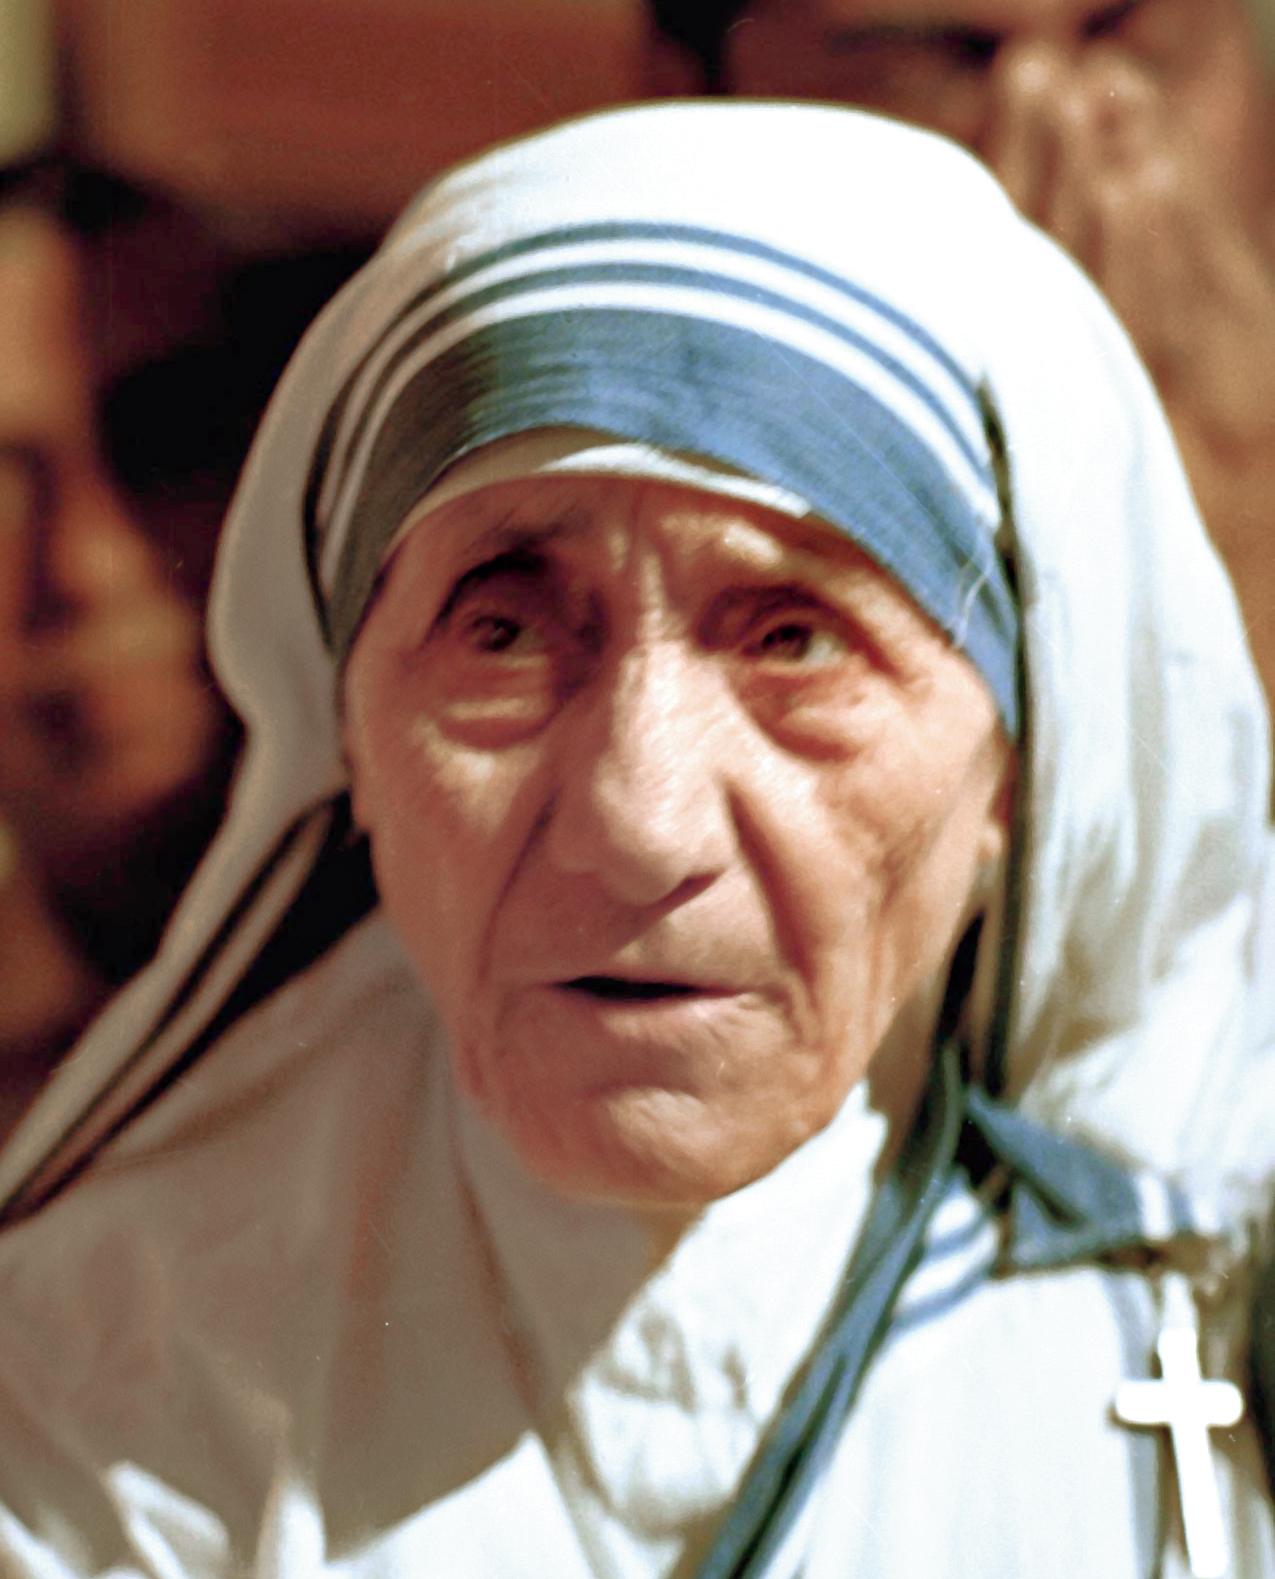 The fruit of silence is prayer; the fruit of prayer is faith; the fruit of faith is love; the fruit of love is service and the fruit of service is peace: Mother Teresa